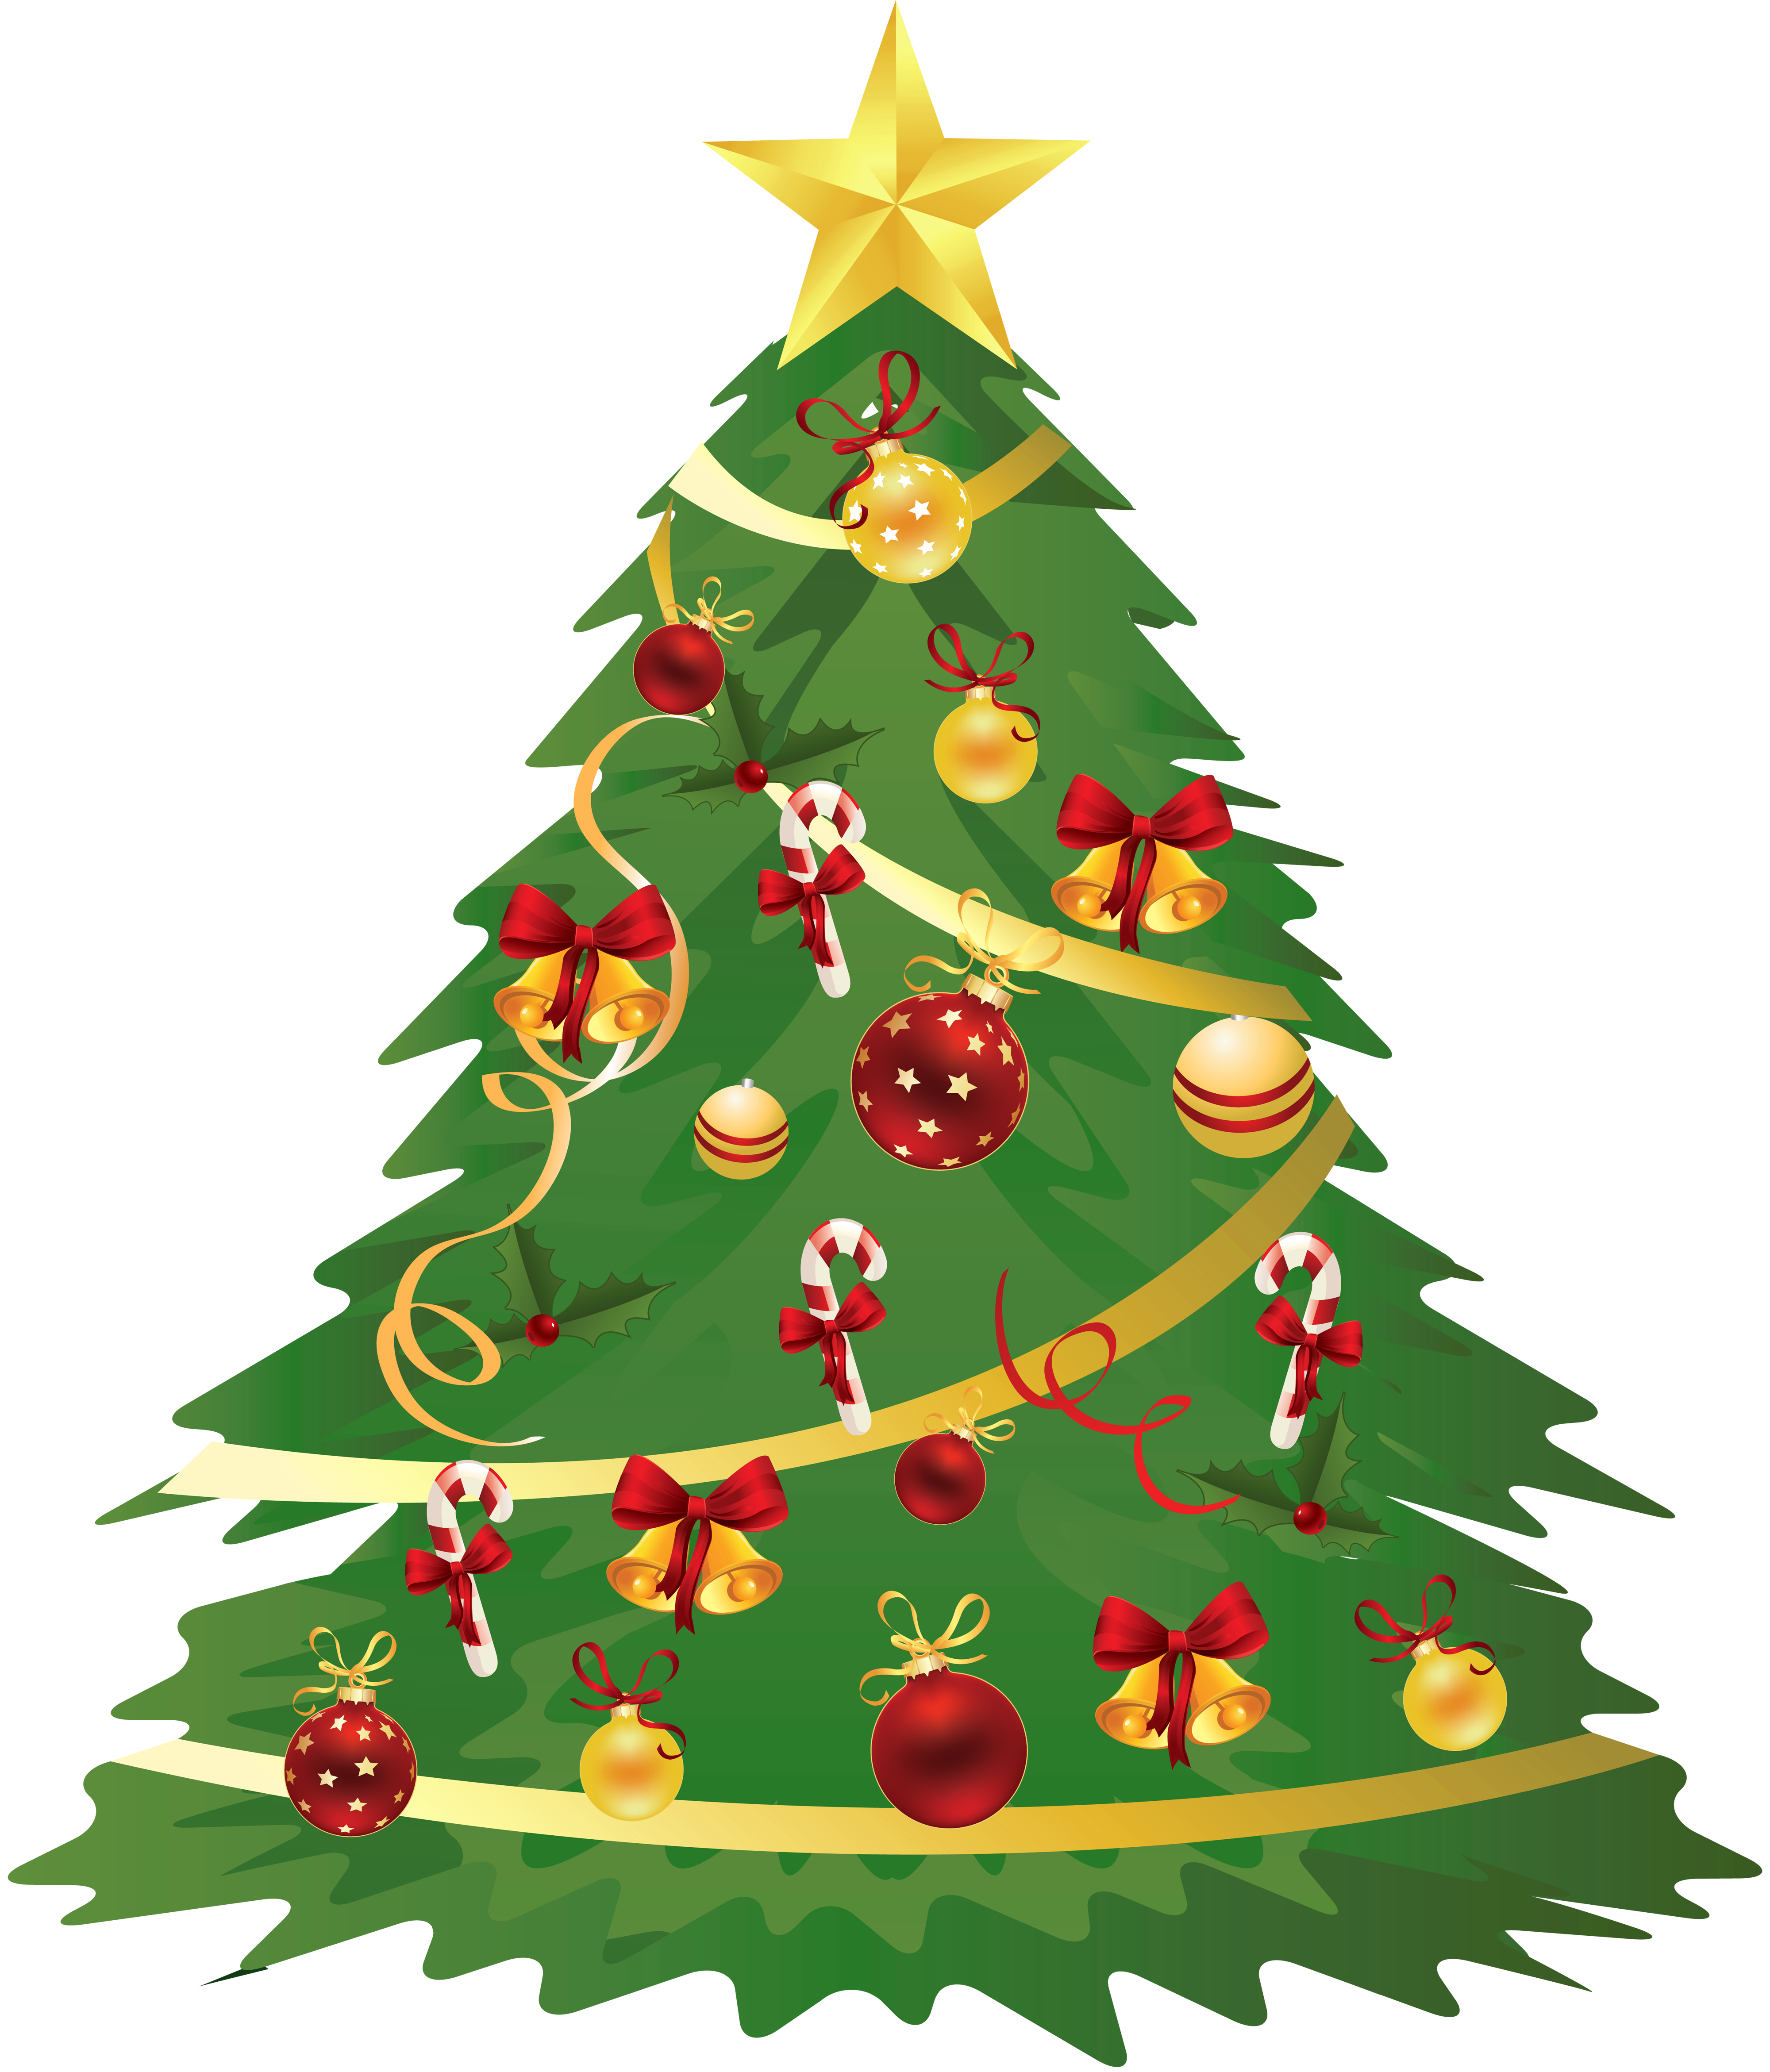 4000x4683 Large Transparent Christmas Tree With Ornaments And Candy Canes